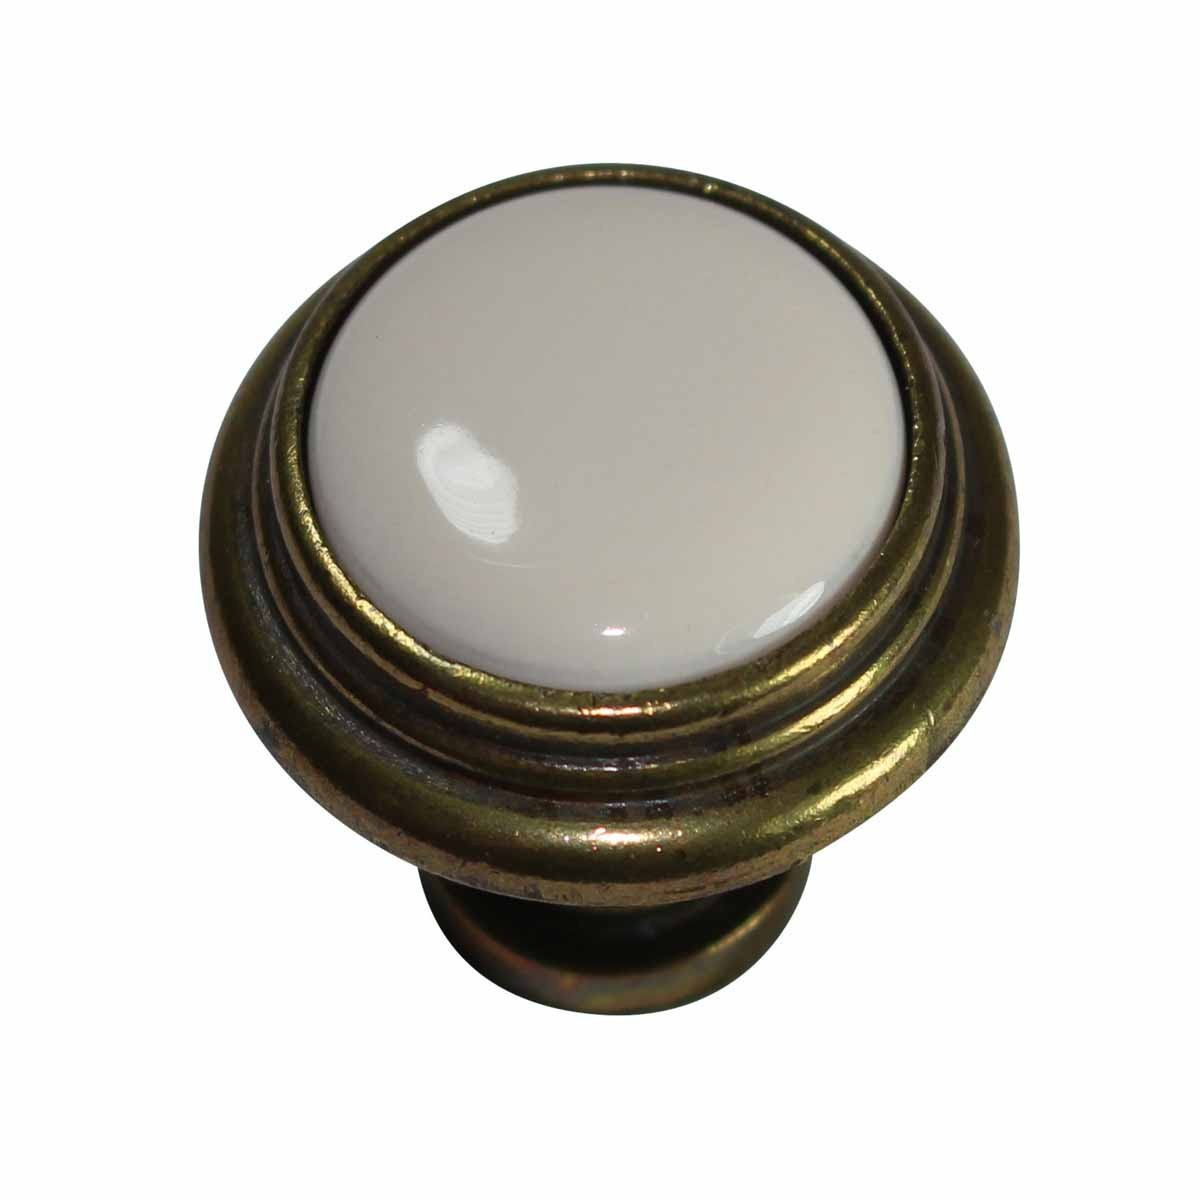 Cabinet Knobs Antique Solid Brass Almond 1.25D Decorative Antique Cabinet Knob Cabinet and Drawer Knobs Unique Dresser Knobs Cabinet Hardware